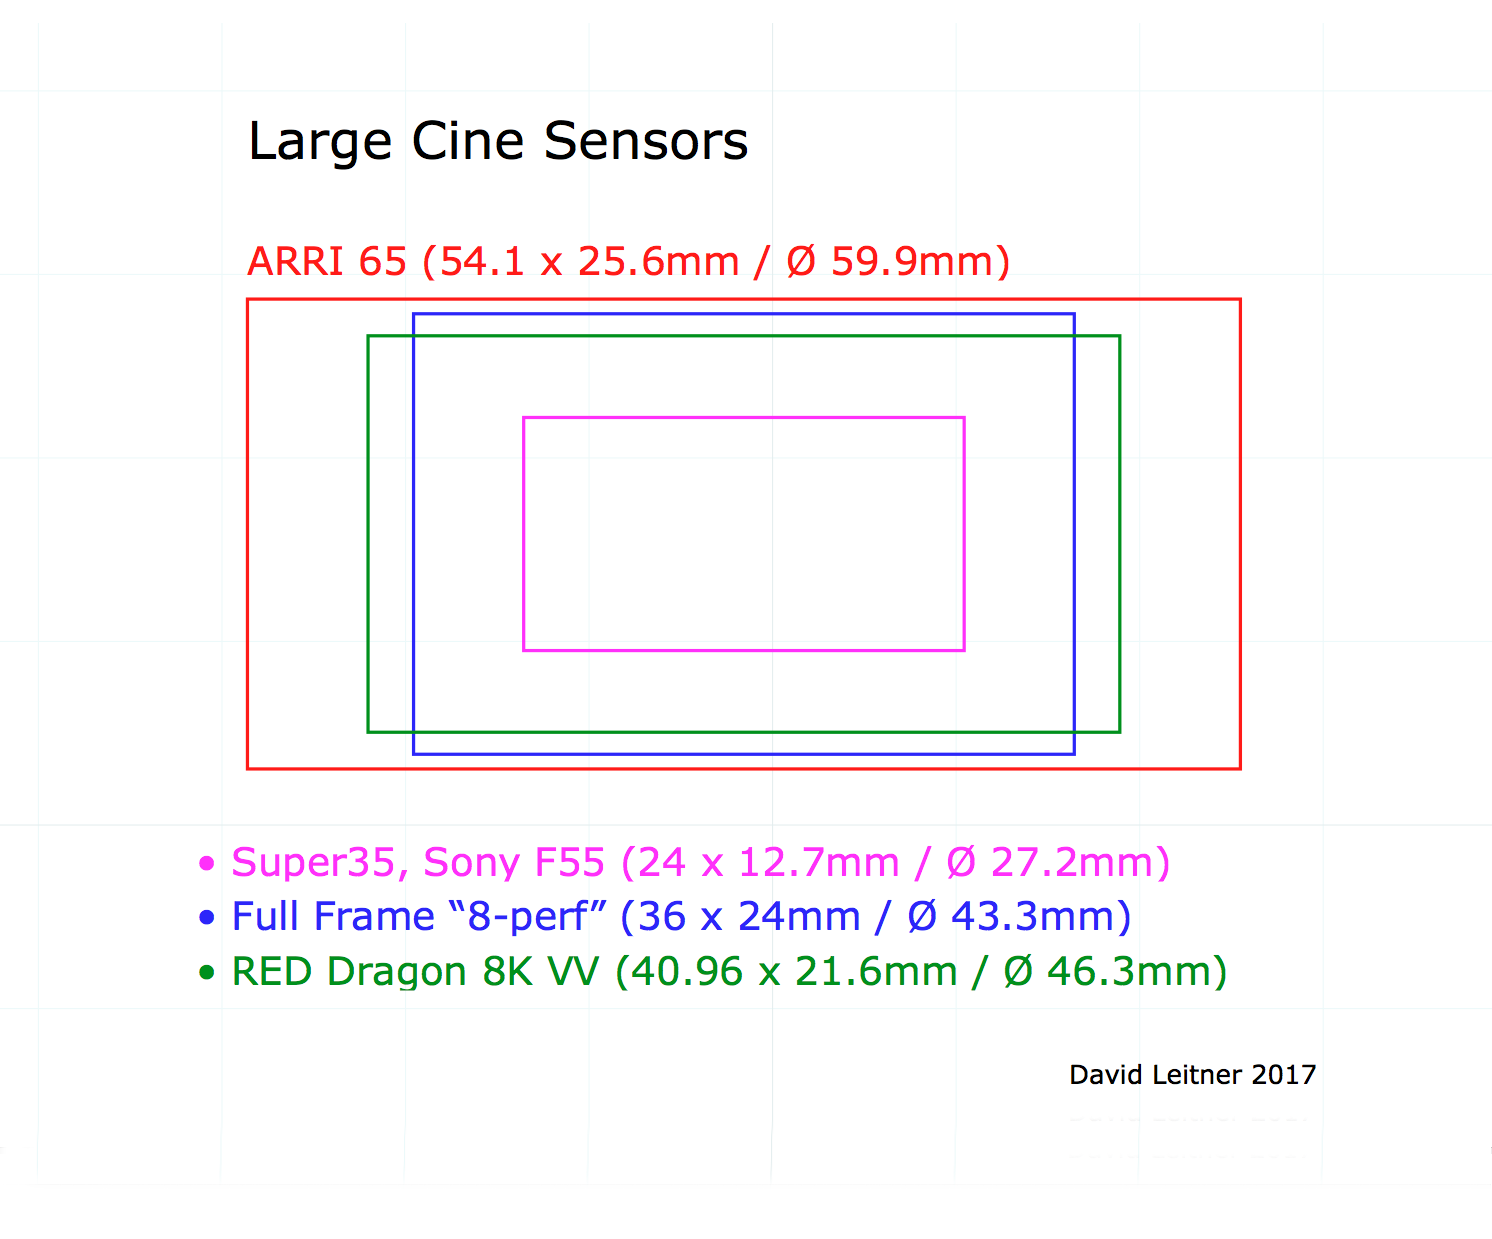 Digital Motion Picture Cameras In 2017 New Images For The 21st Logic Gate Diagram Gorgeous Schematic Beyond Super 35mm